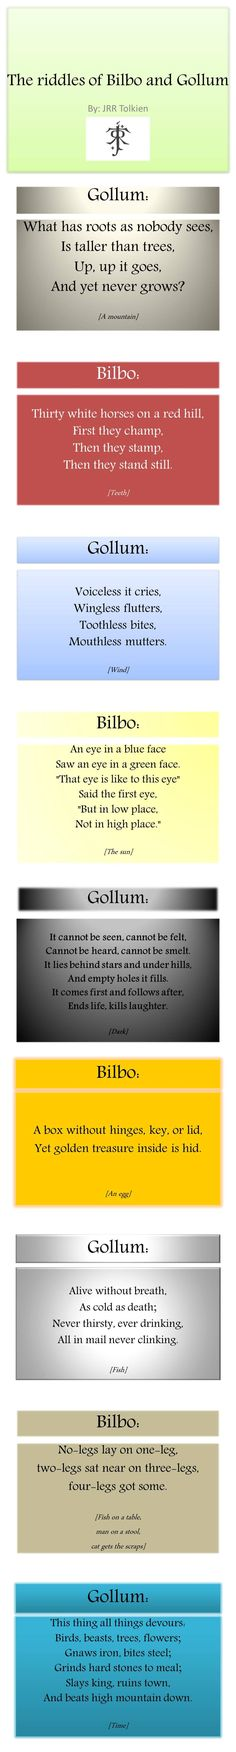 Riddles Tolkien. This is the very chapter that got me hooked on both riddles and reading.